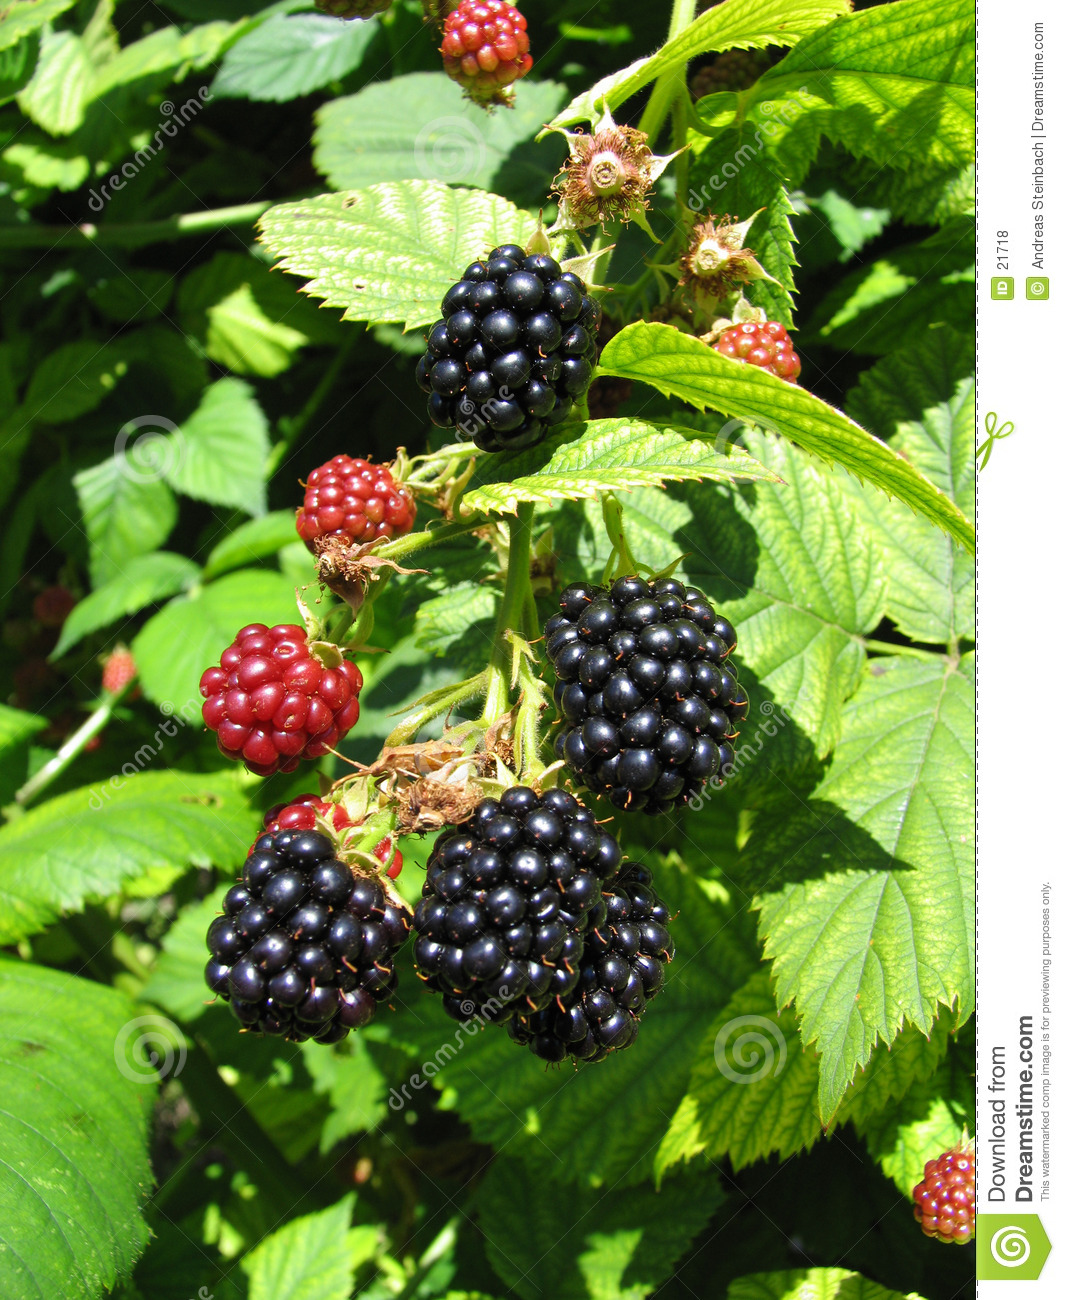 Blackberries 2/2